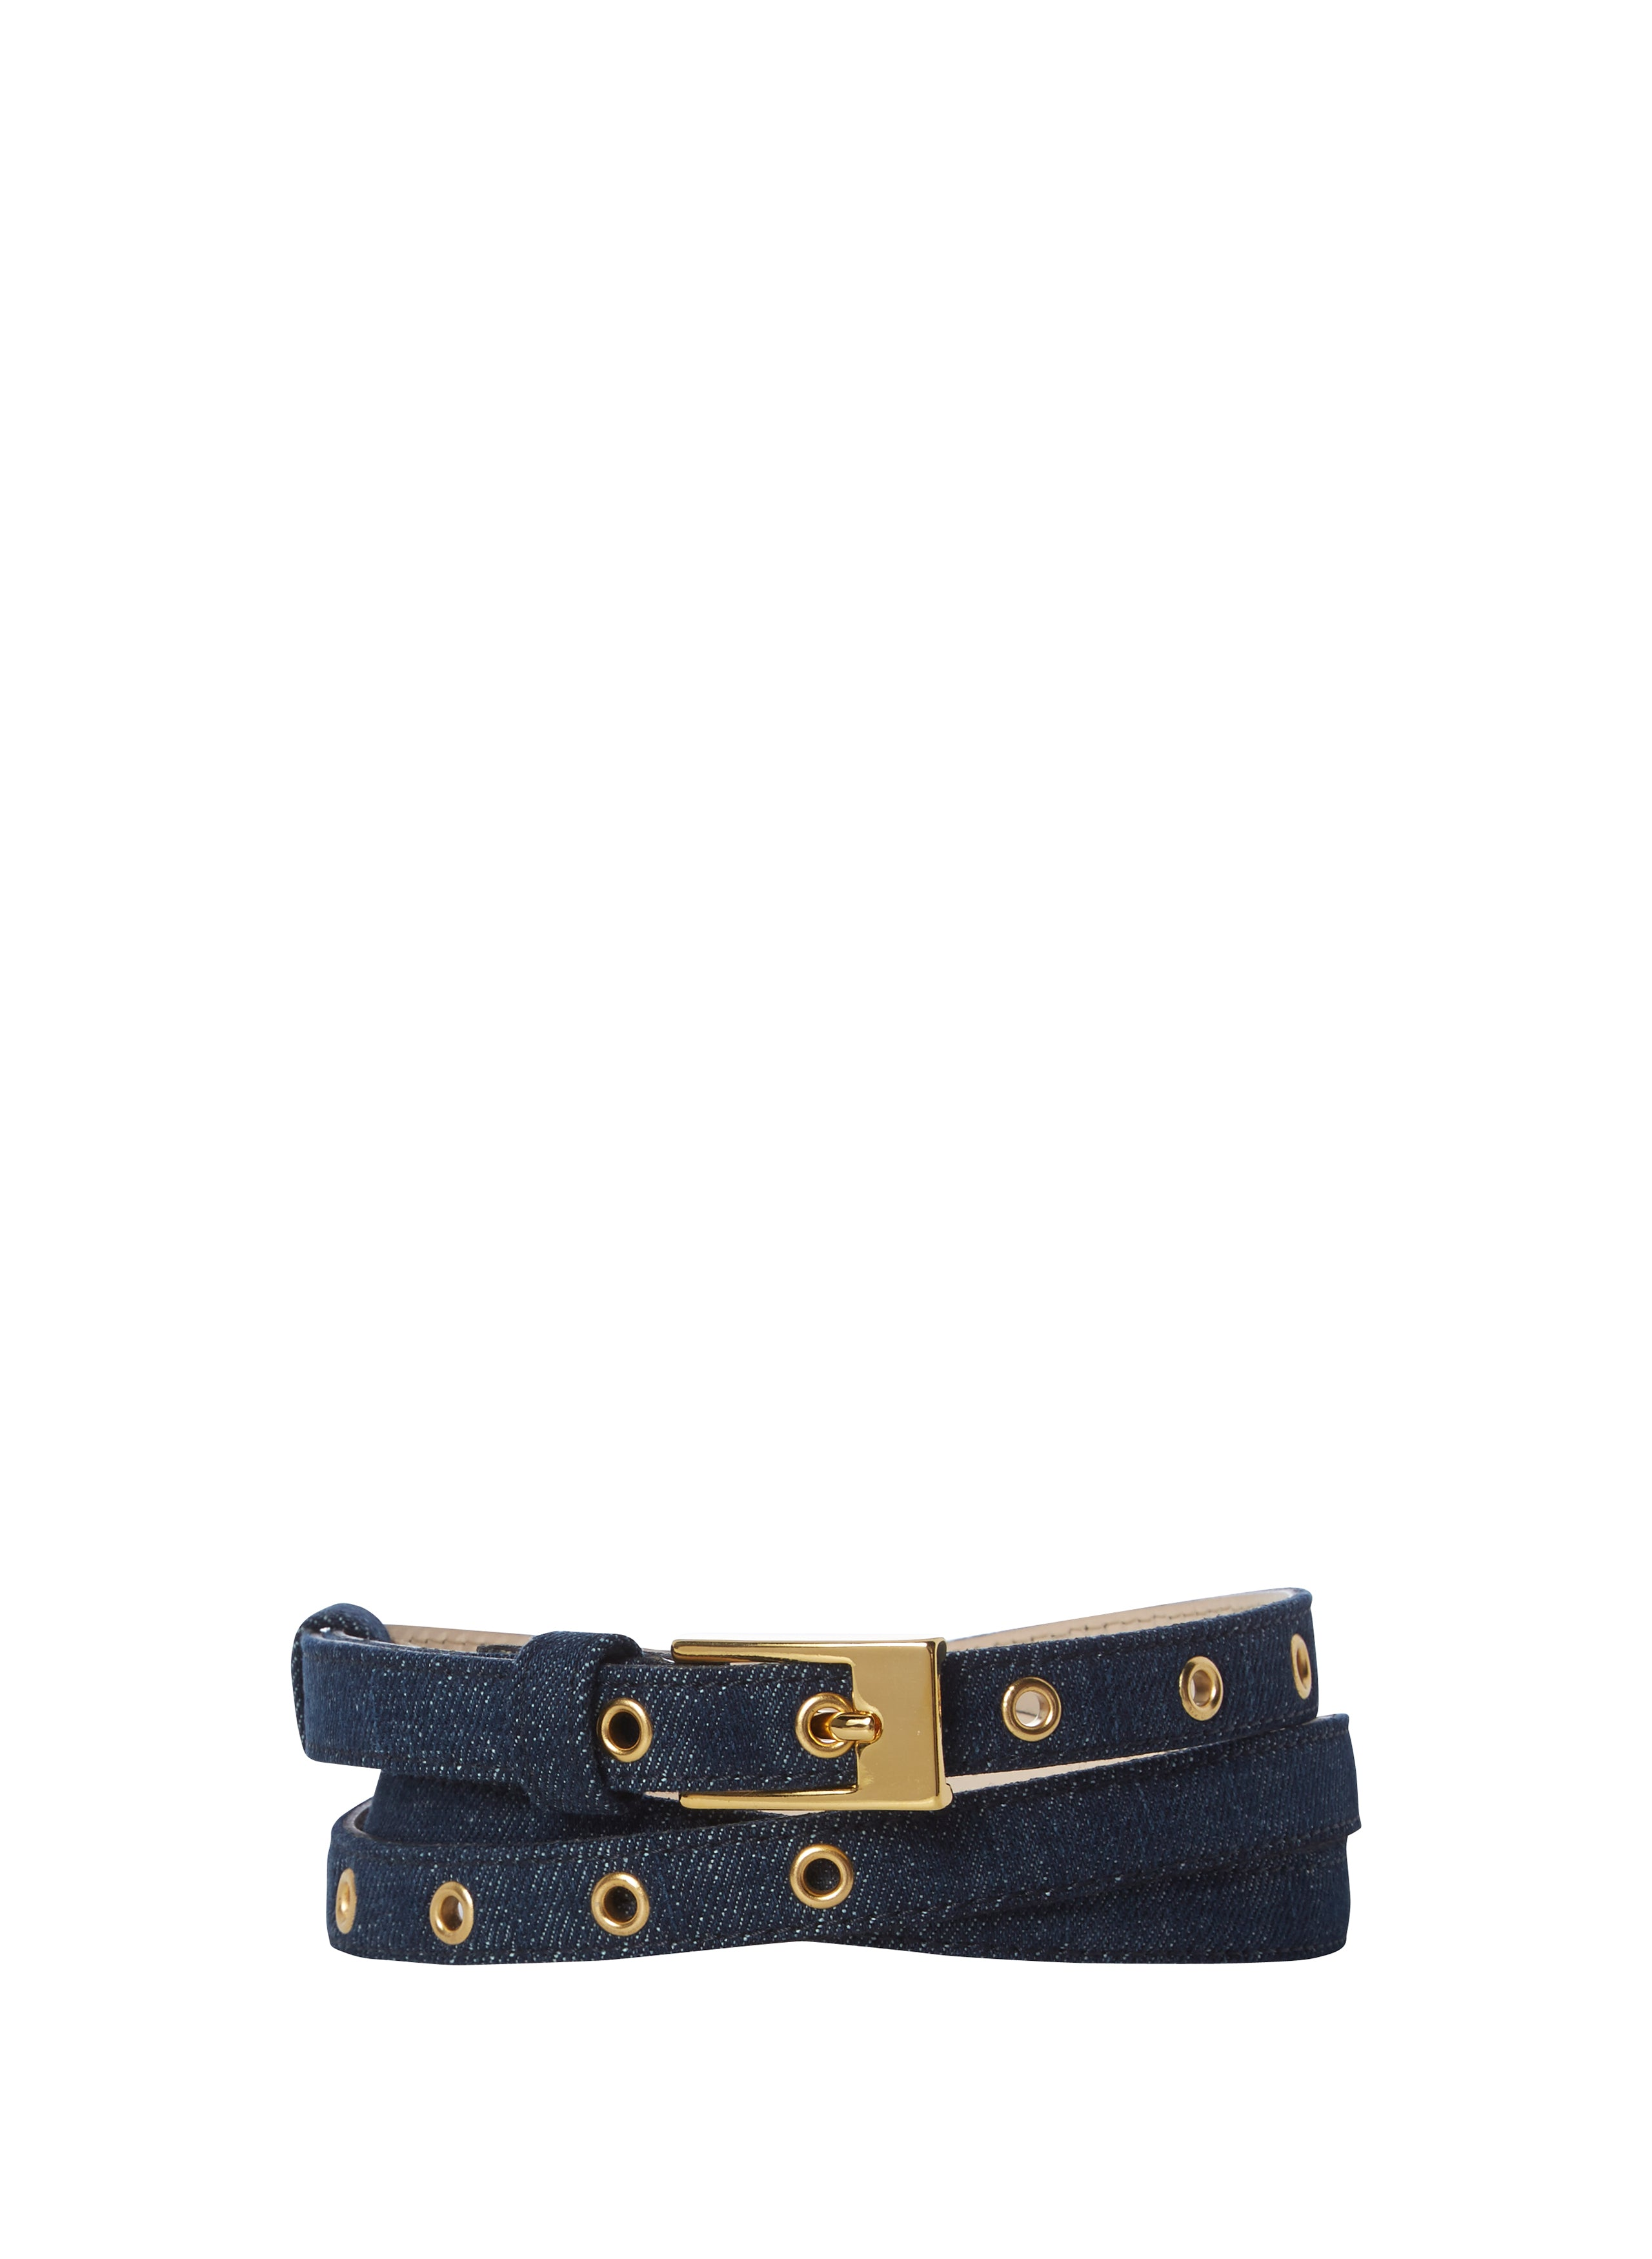 Maternity Skinny Belt - Gold Buckle